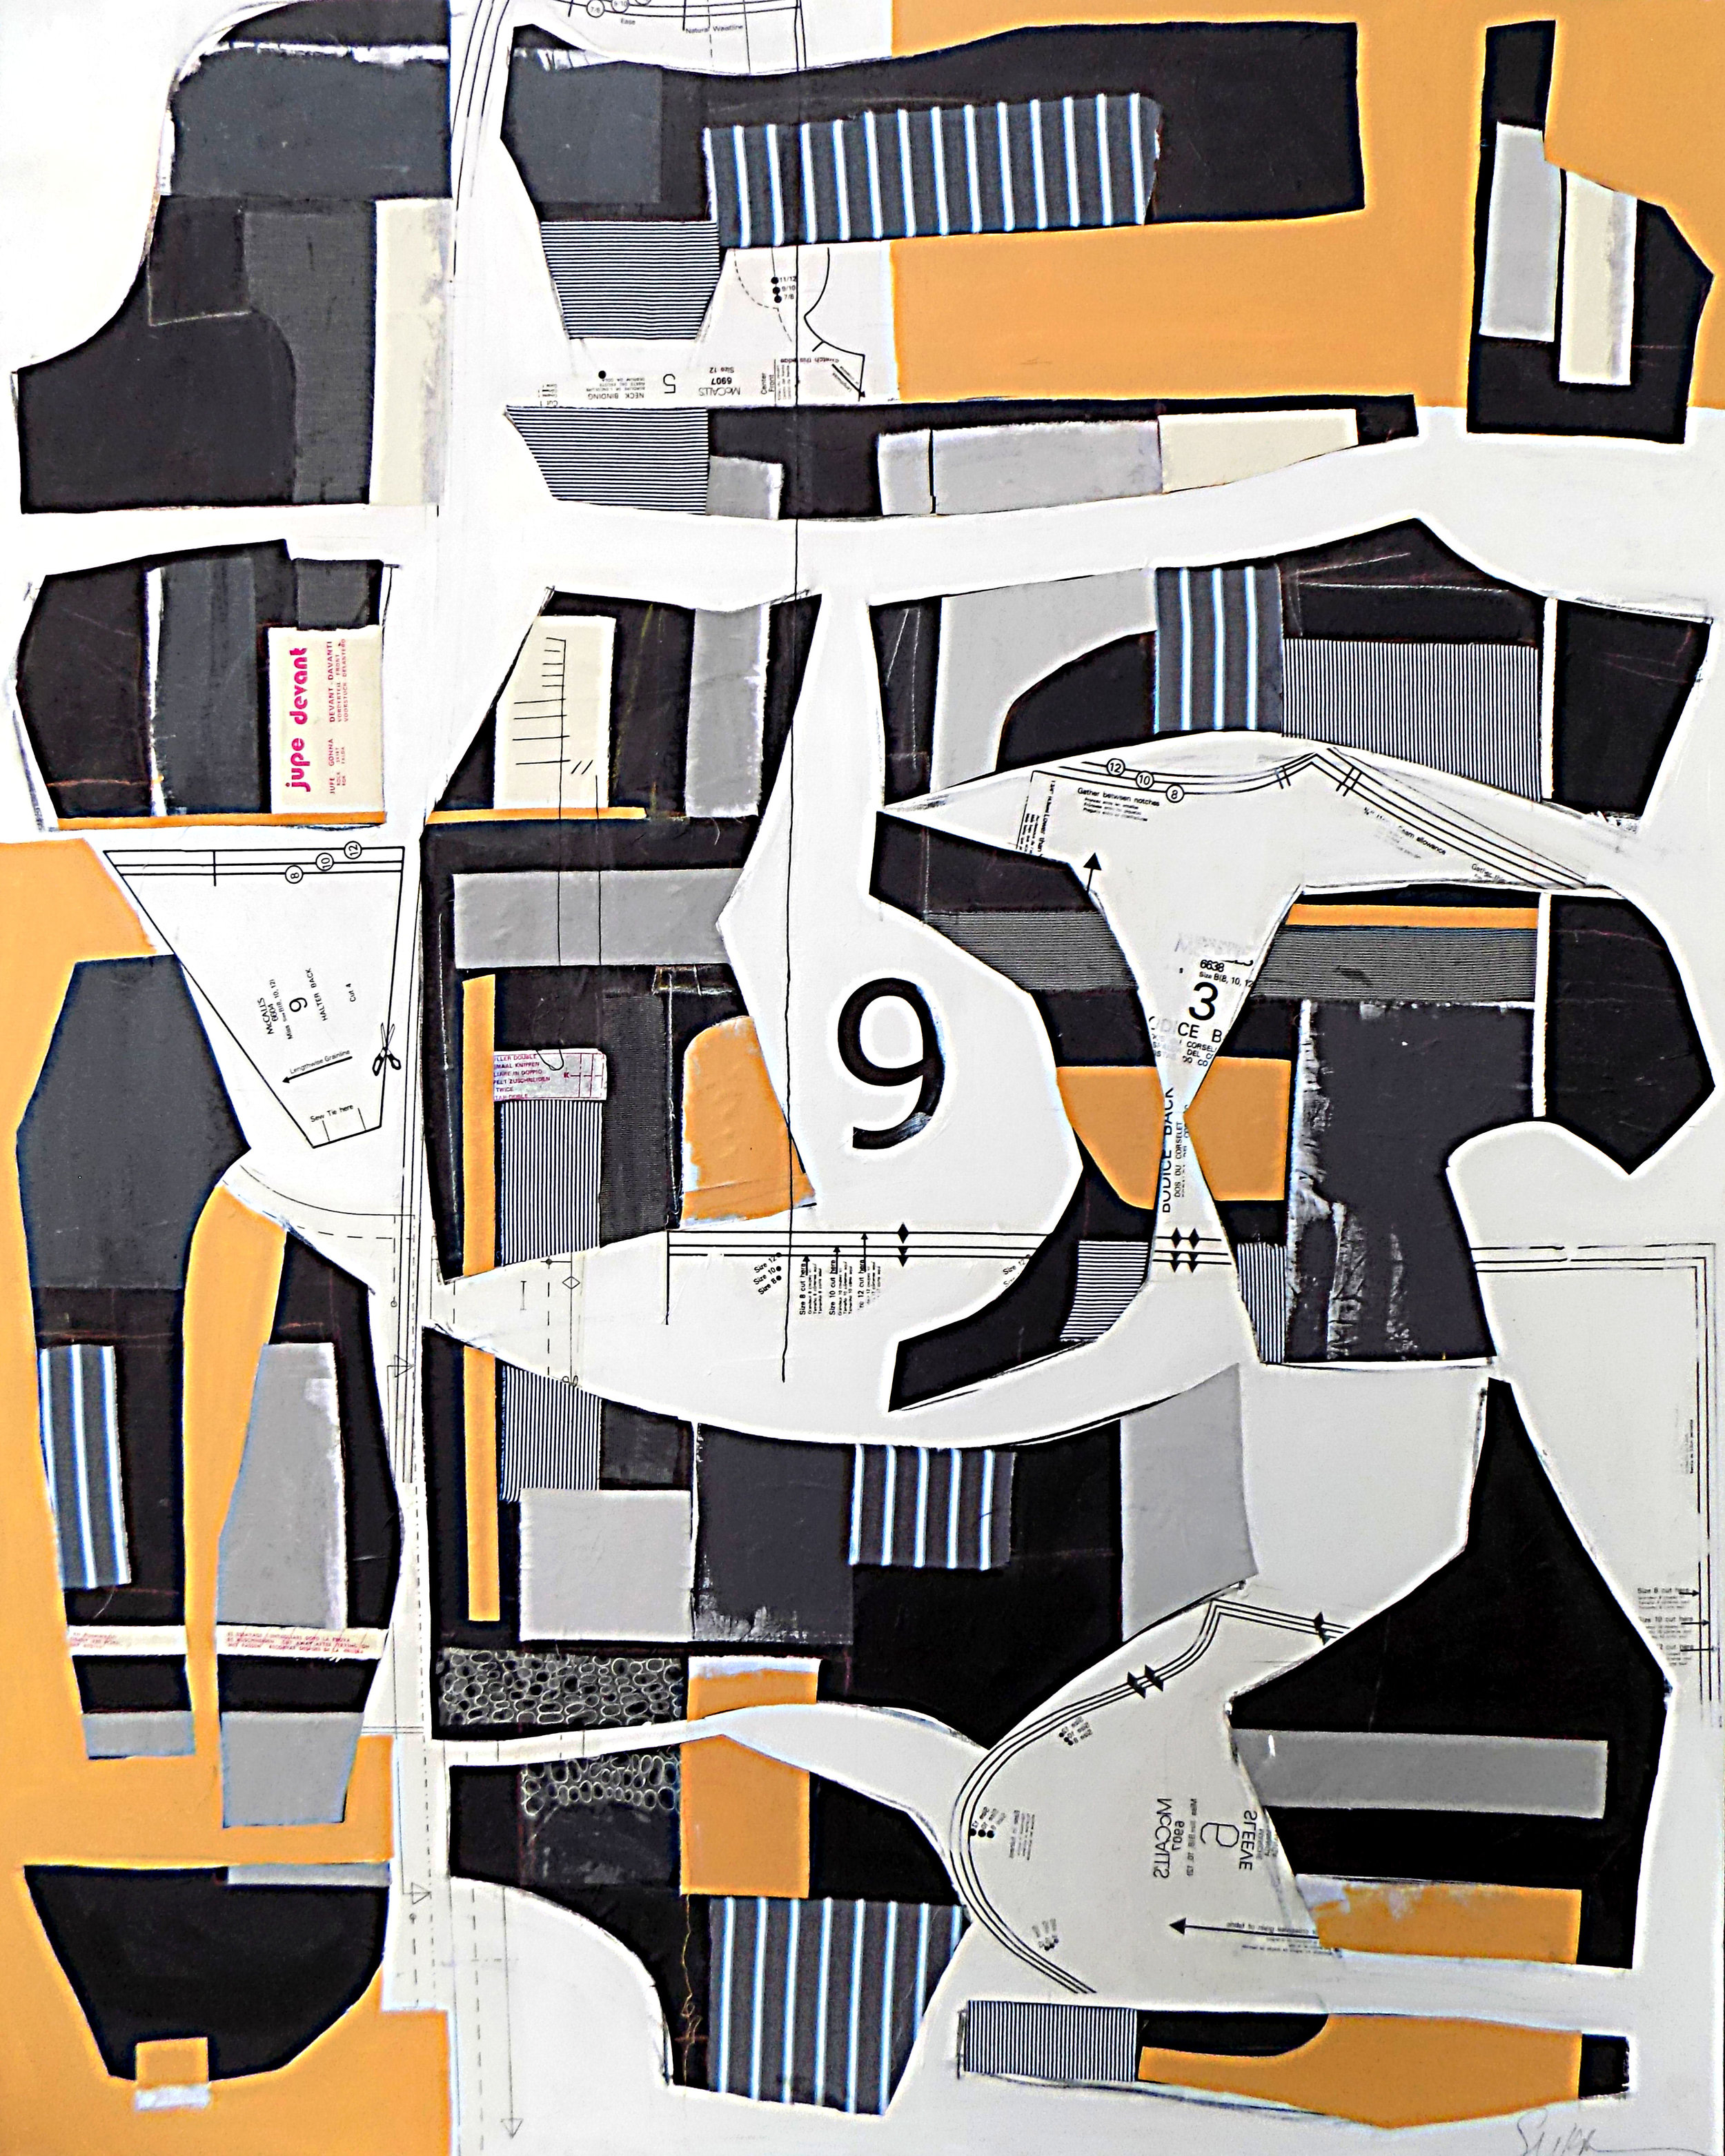 Deconstructed No. 9 - 4' x 5' Acrylic and textile on canvasThis piece has been sold